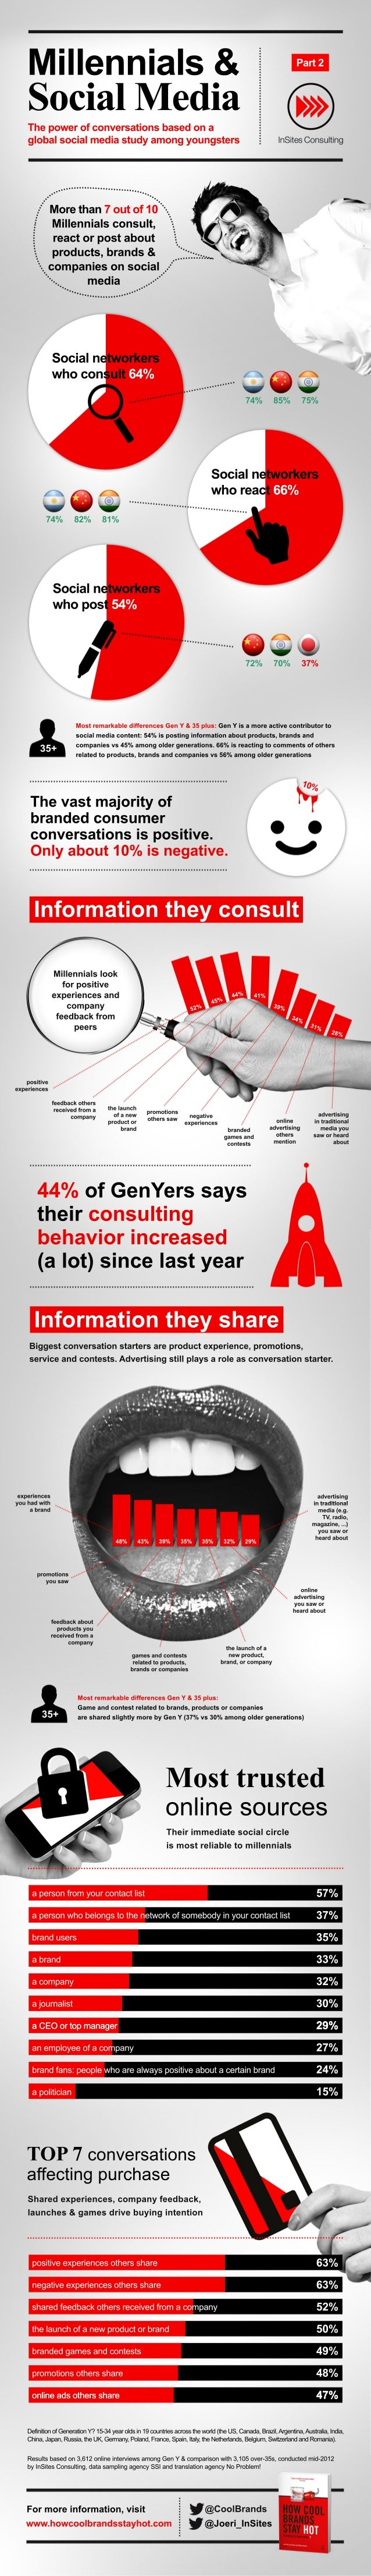 Infographic: Millennials & Social Media - The power of conversations based on a global social media study among youngsters